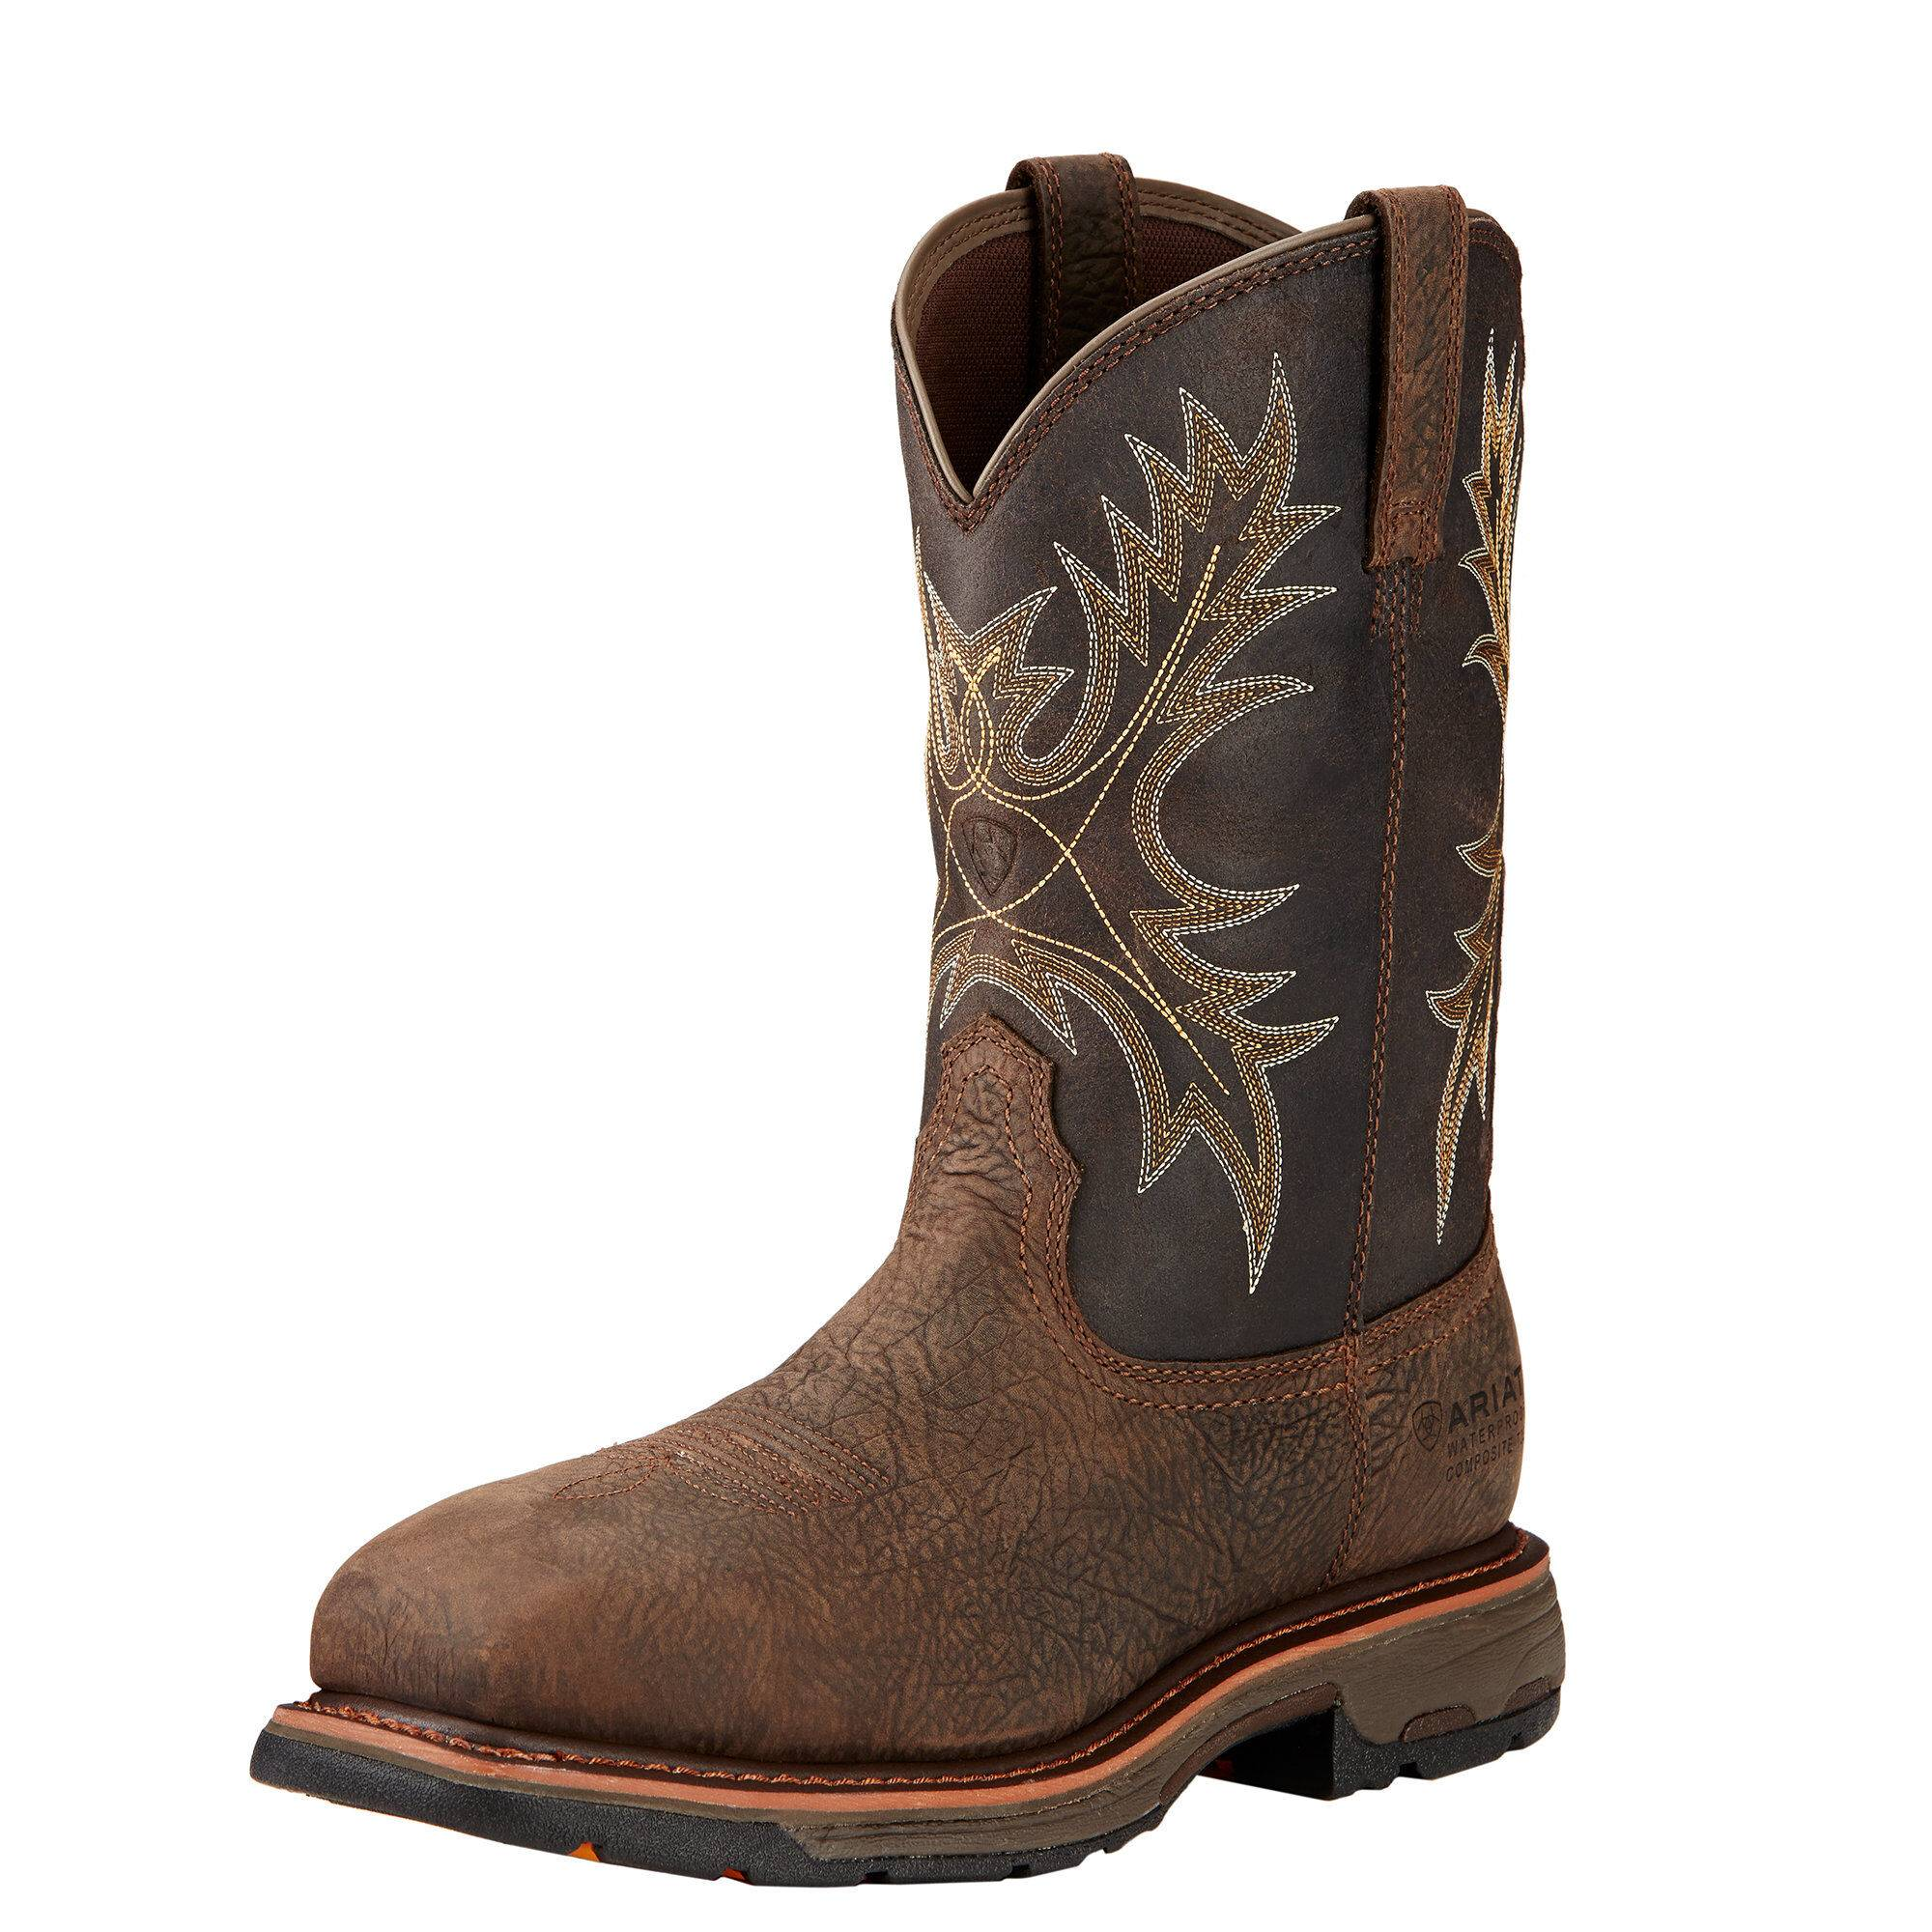 Ariat Men's WorkHog Waterproof Composite Toe Work Boots in Bruin Brown Leather, Size 10 B / Narrow by Ariat